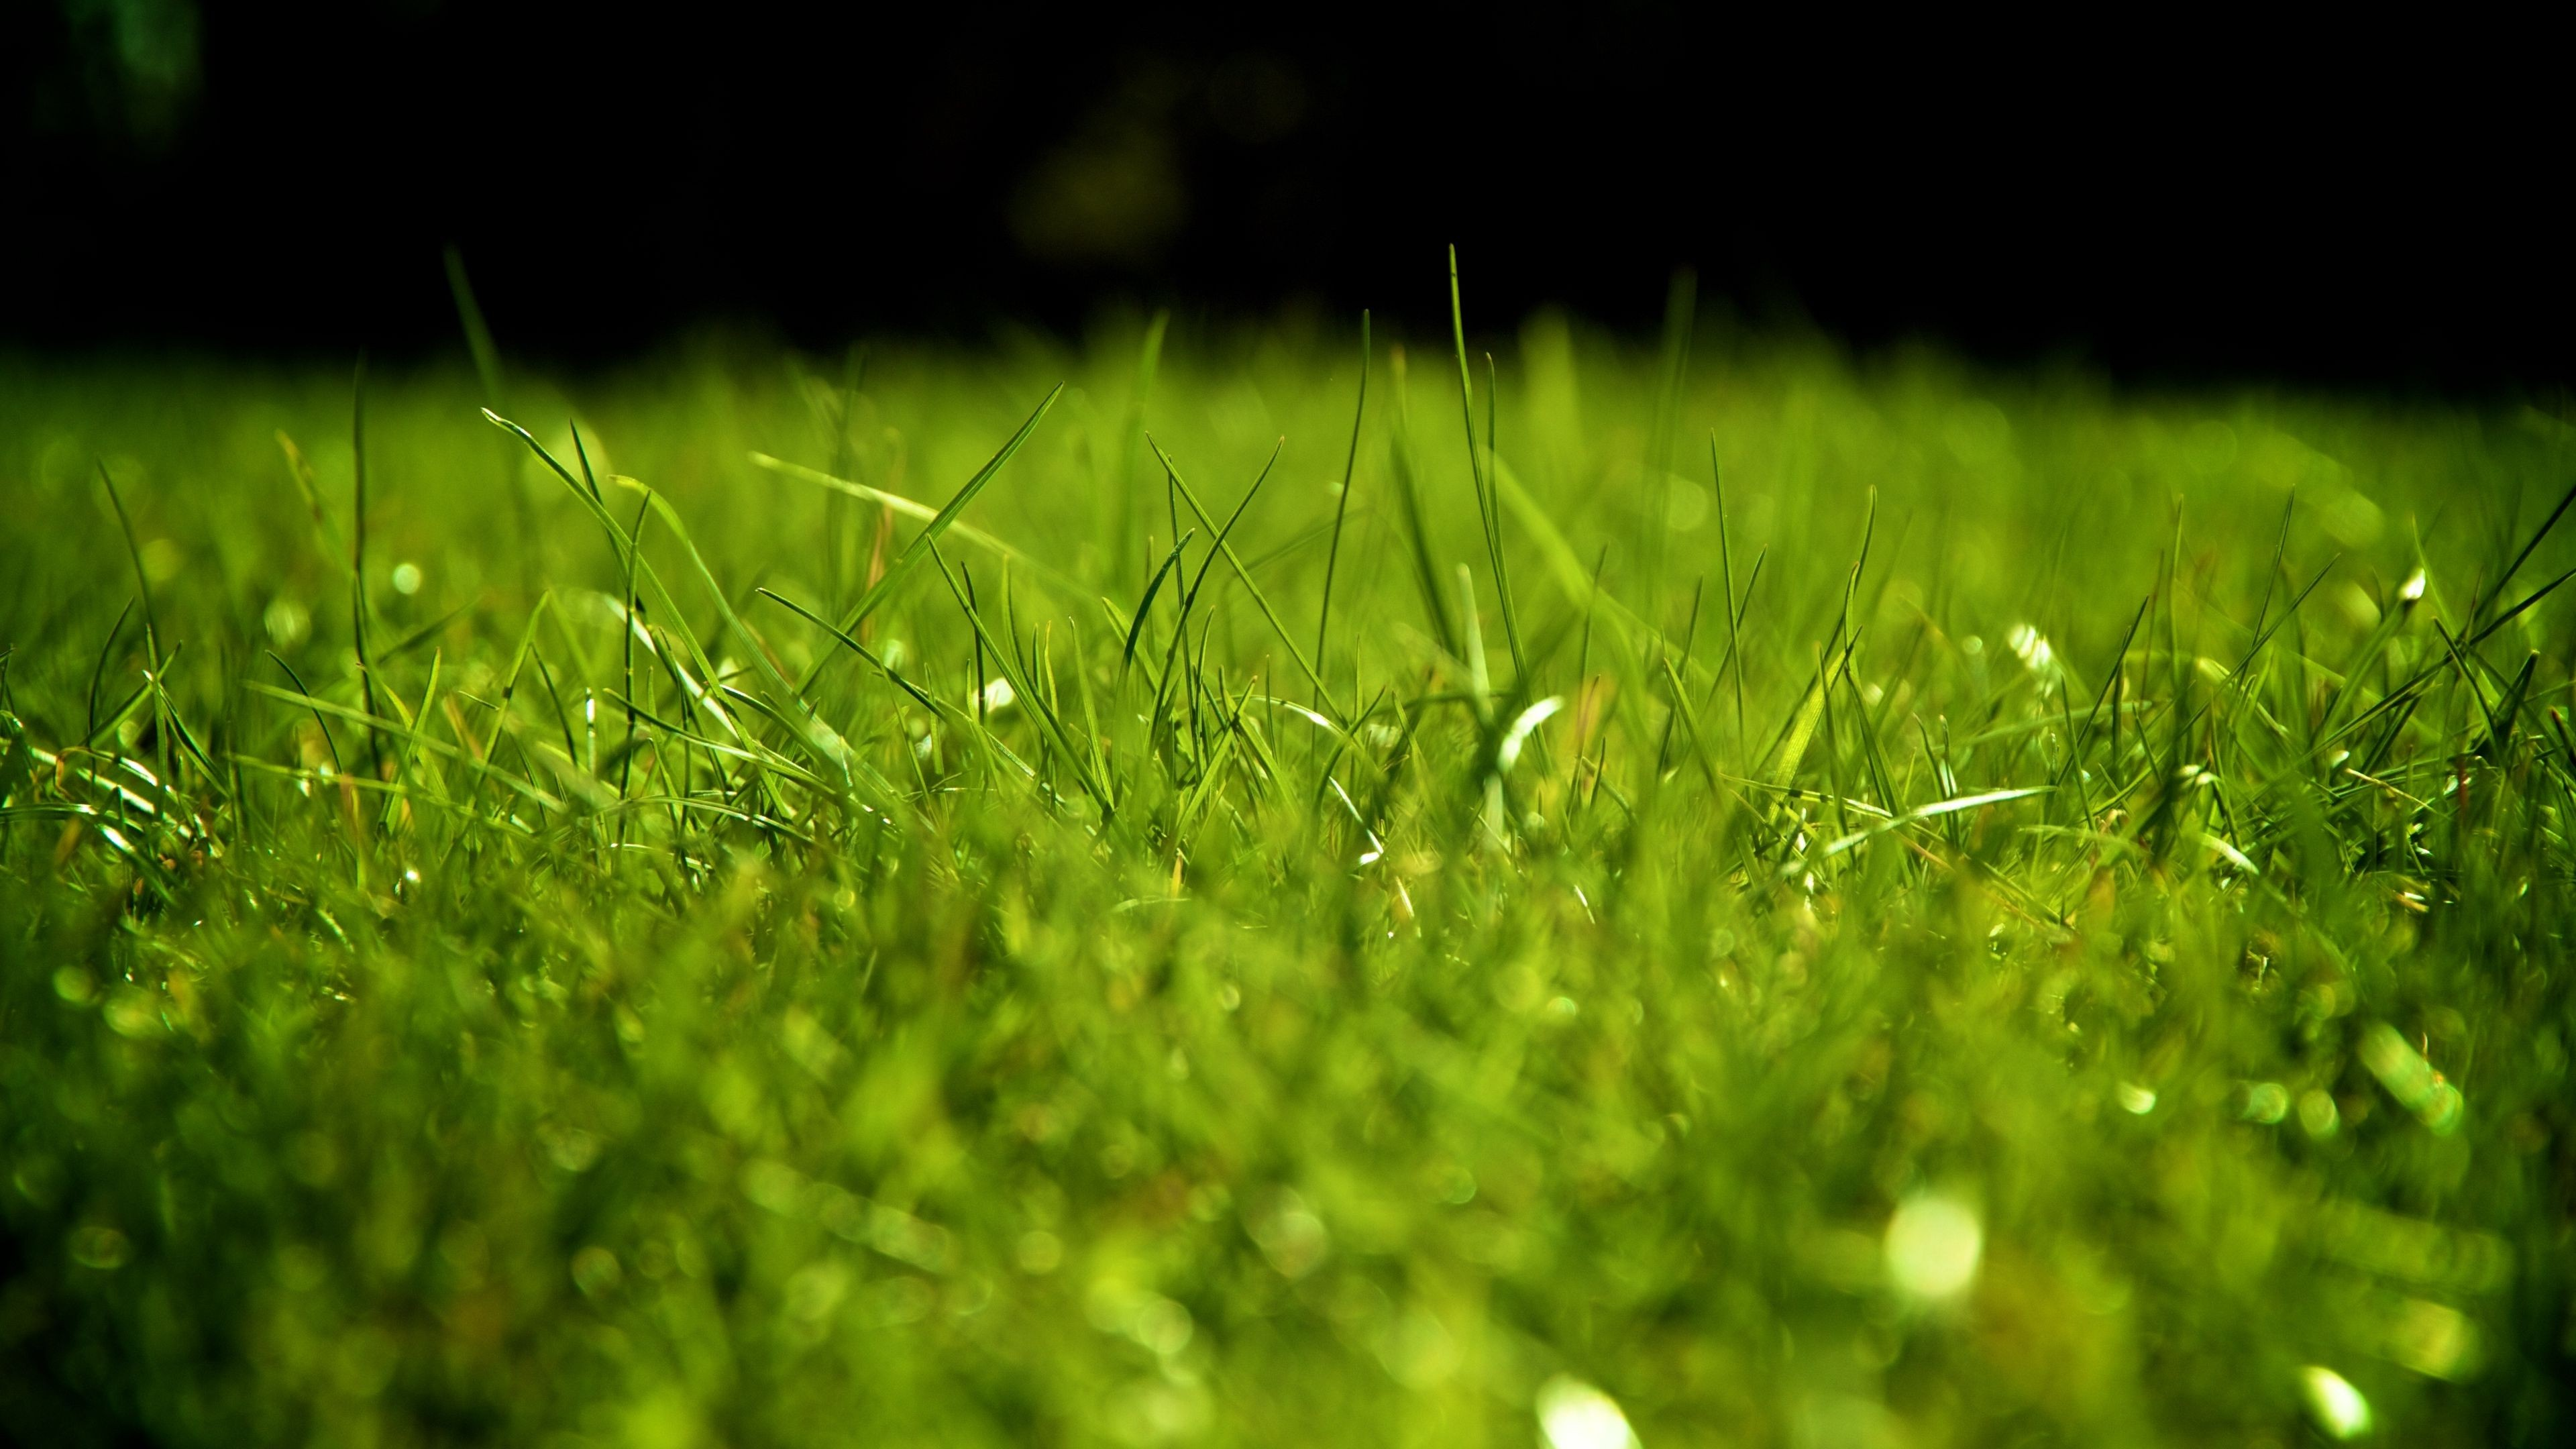 The Lawn High Quality